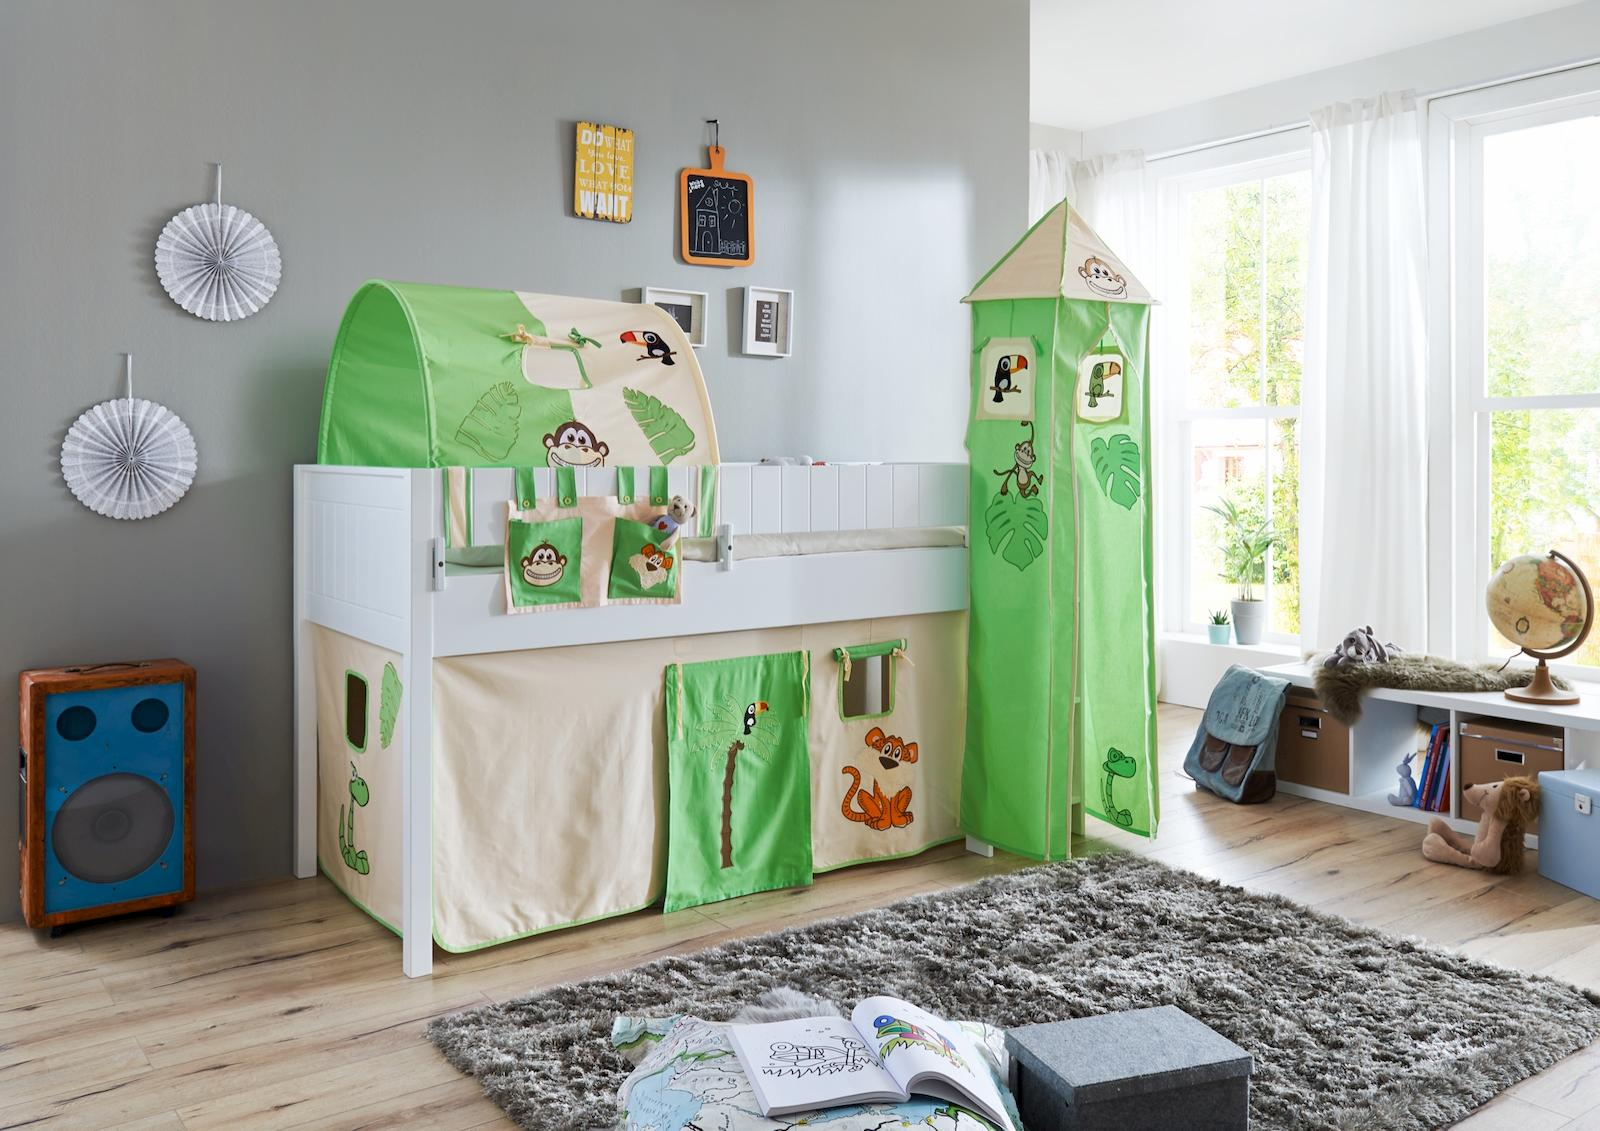 hochbett luka 3 kinderbett spielbett halbhohes bett wei stoffset cinderella kids teens betten. Black Bedroom Furniture Sets. Home Design Ideas